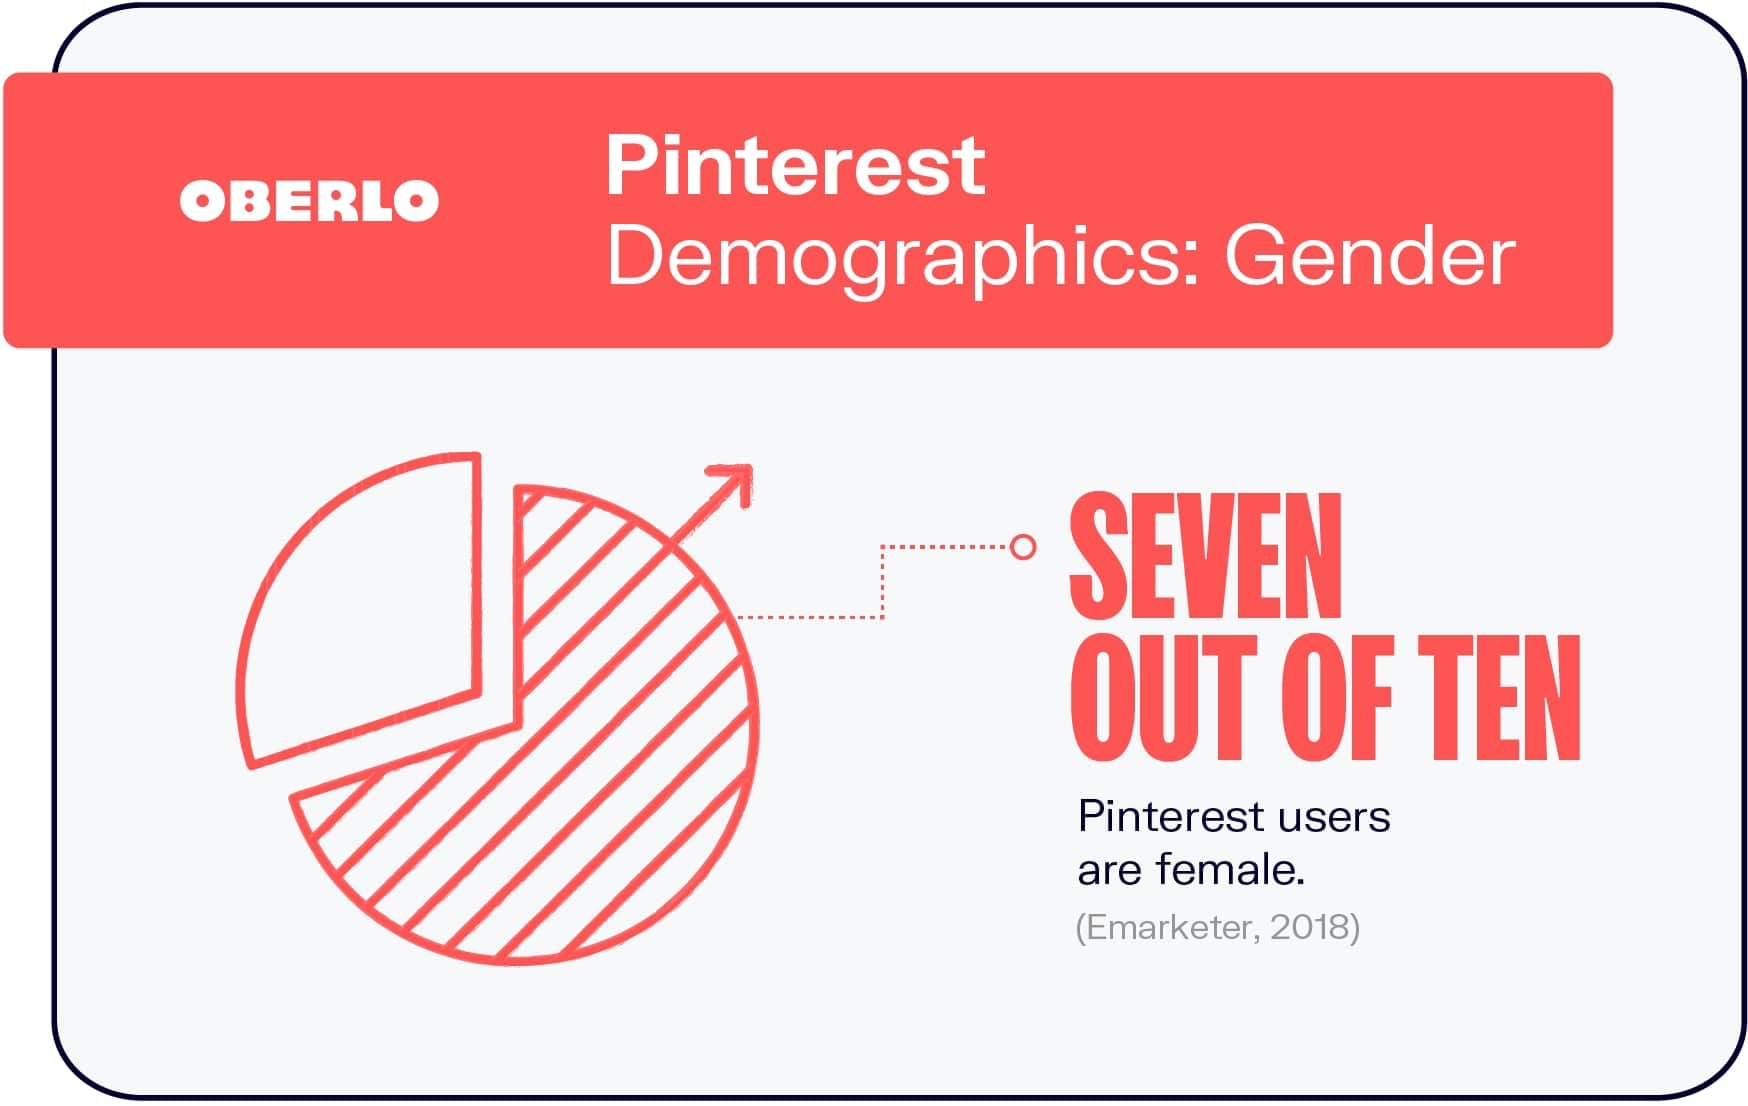 Pinterest Demographics: Gender